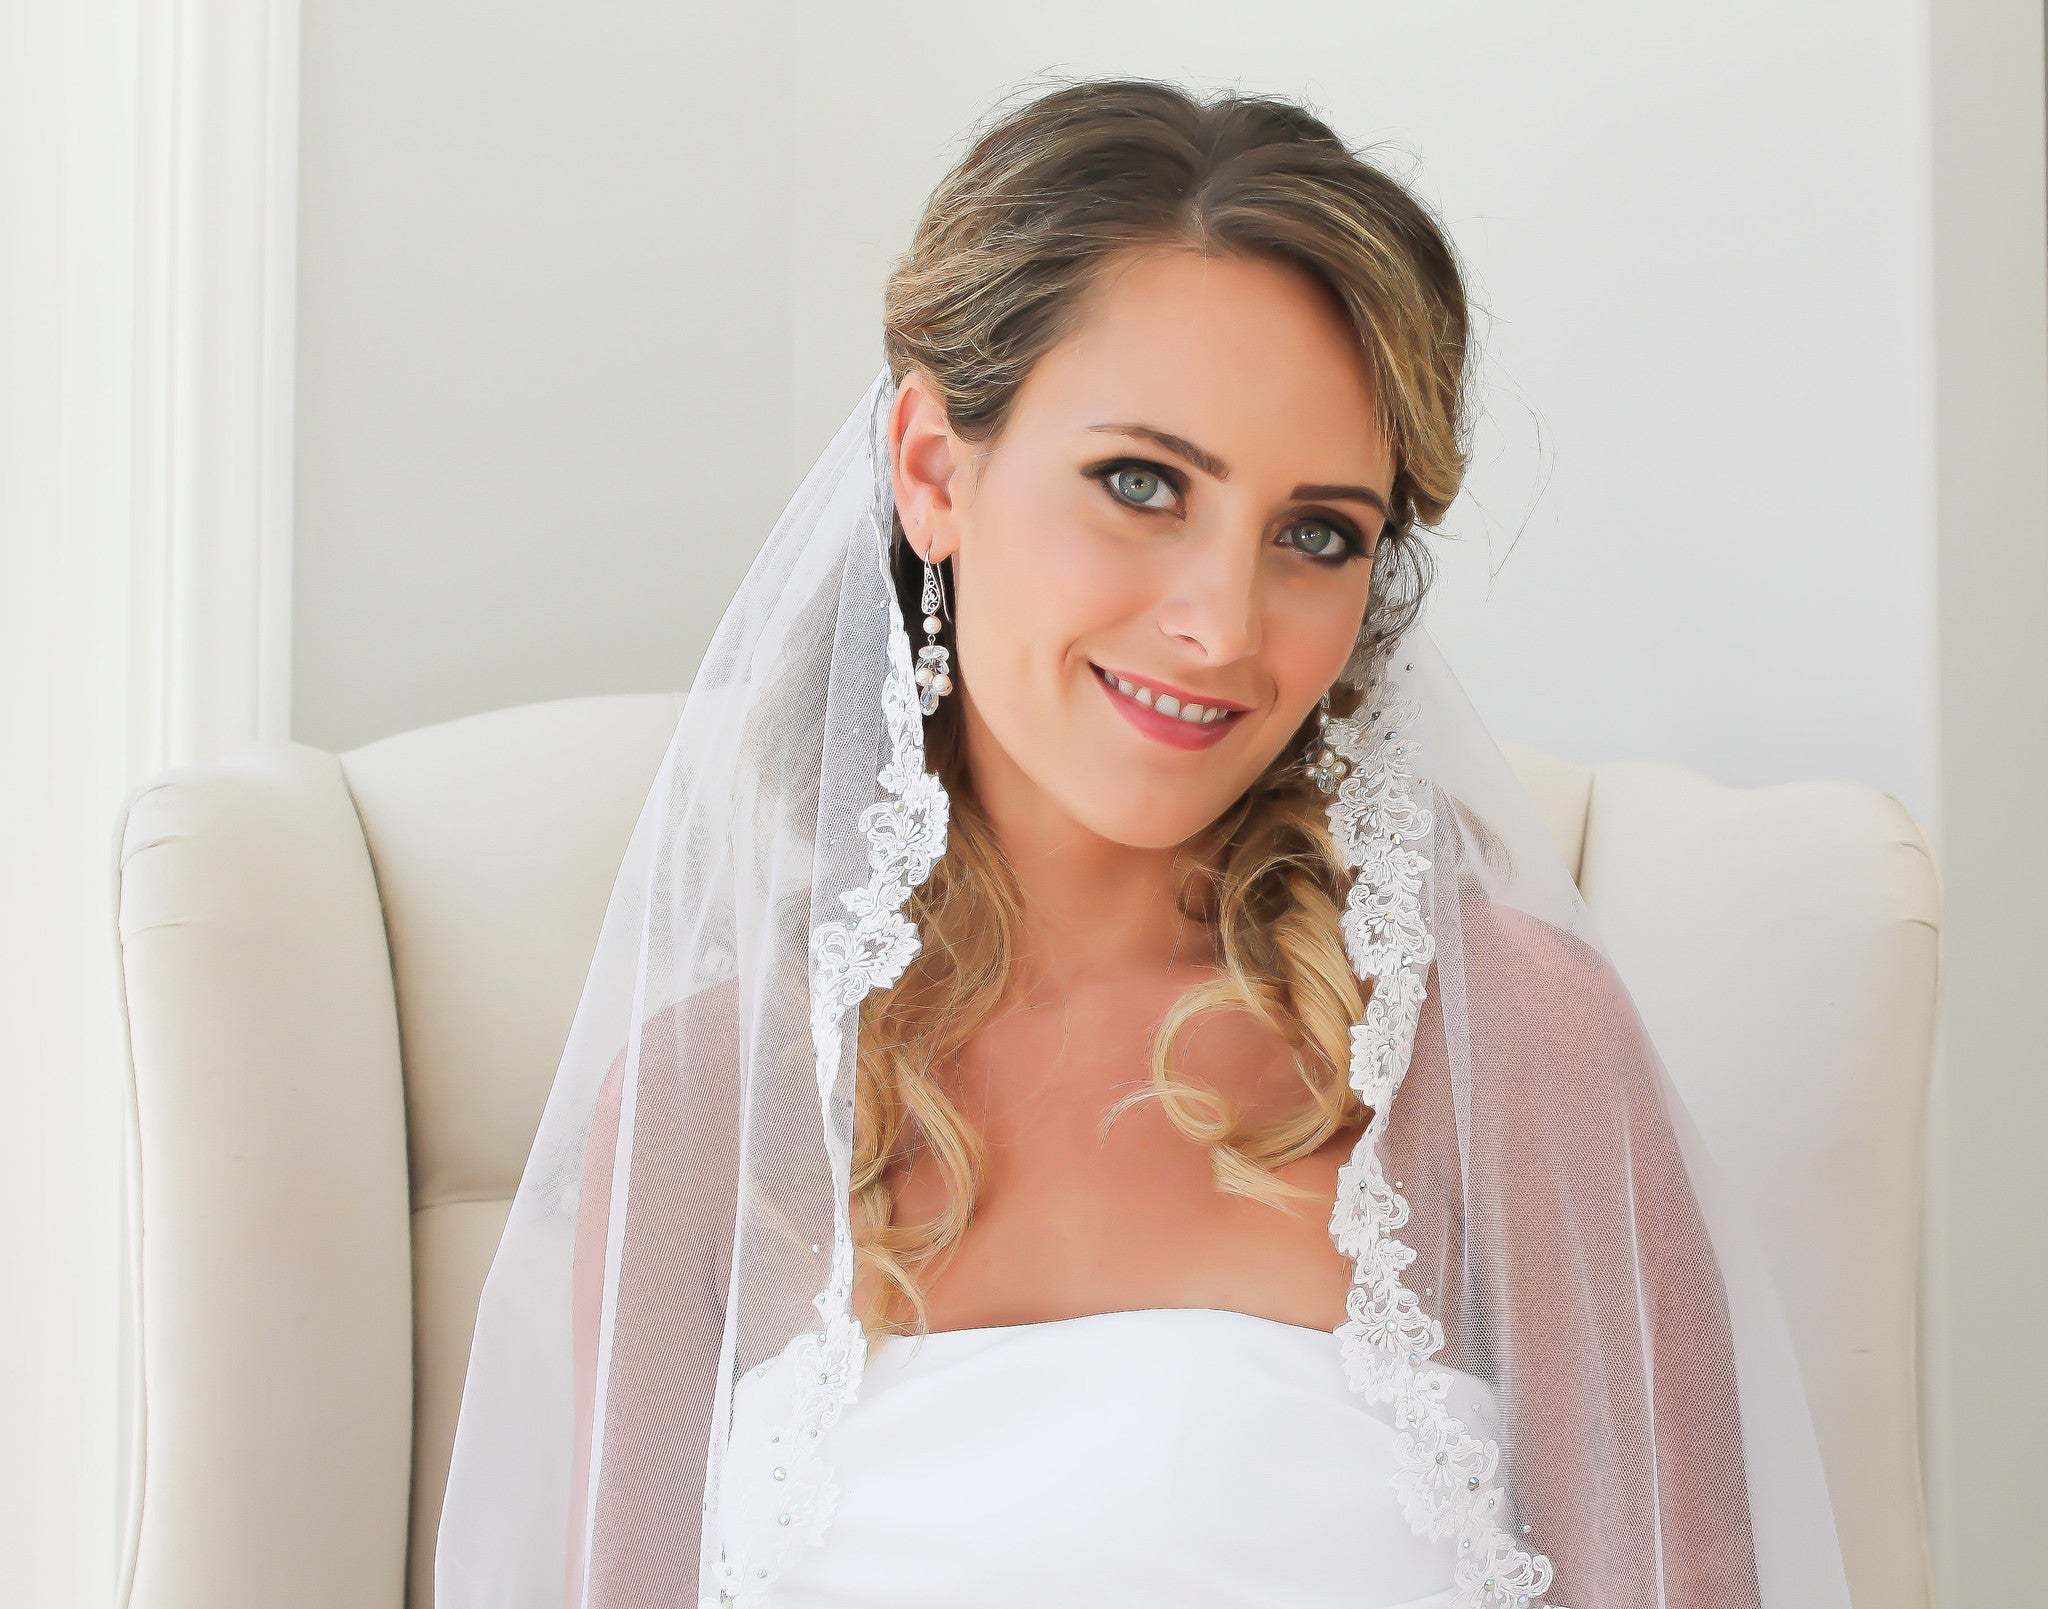 Wedding Veil Handmade Soft Tulle and Lace - Bride Glamor